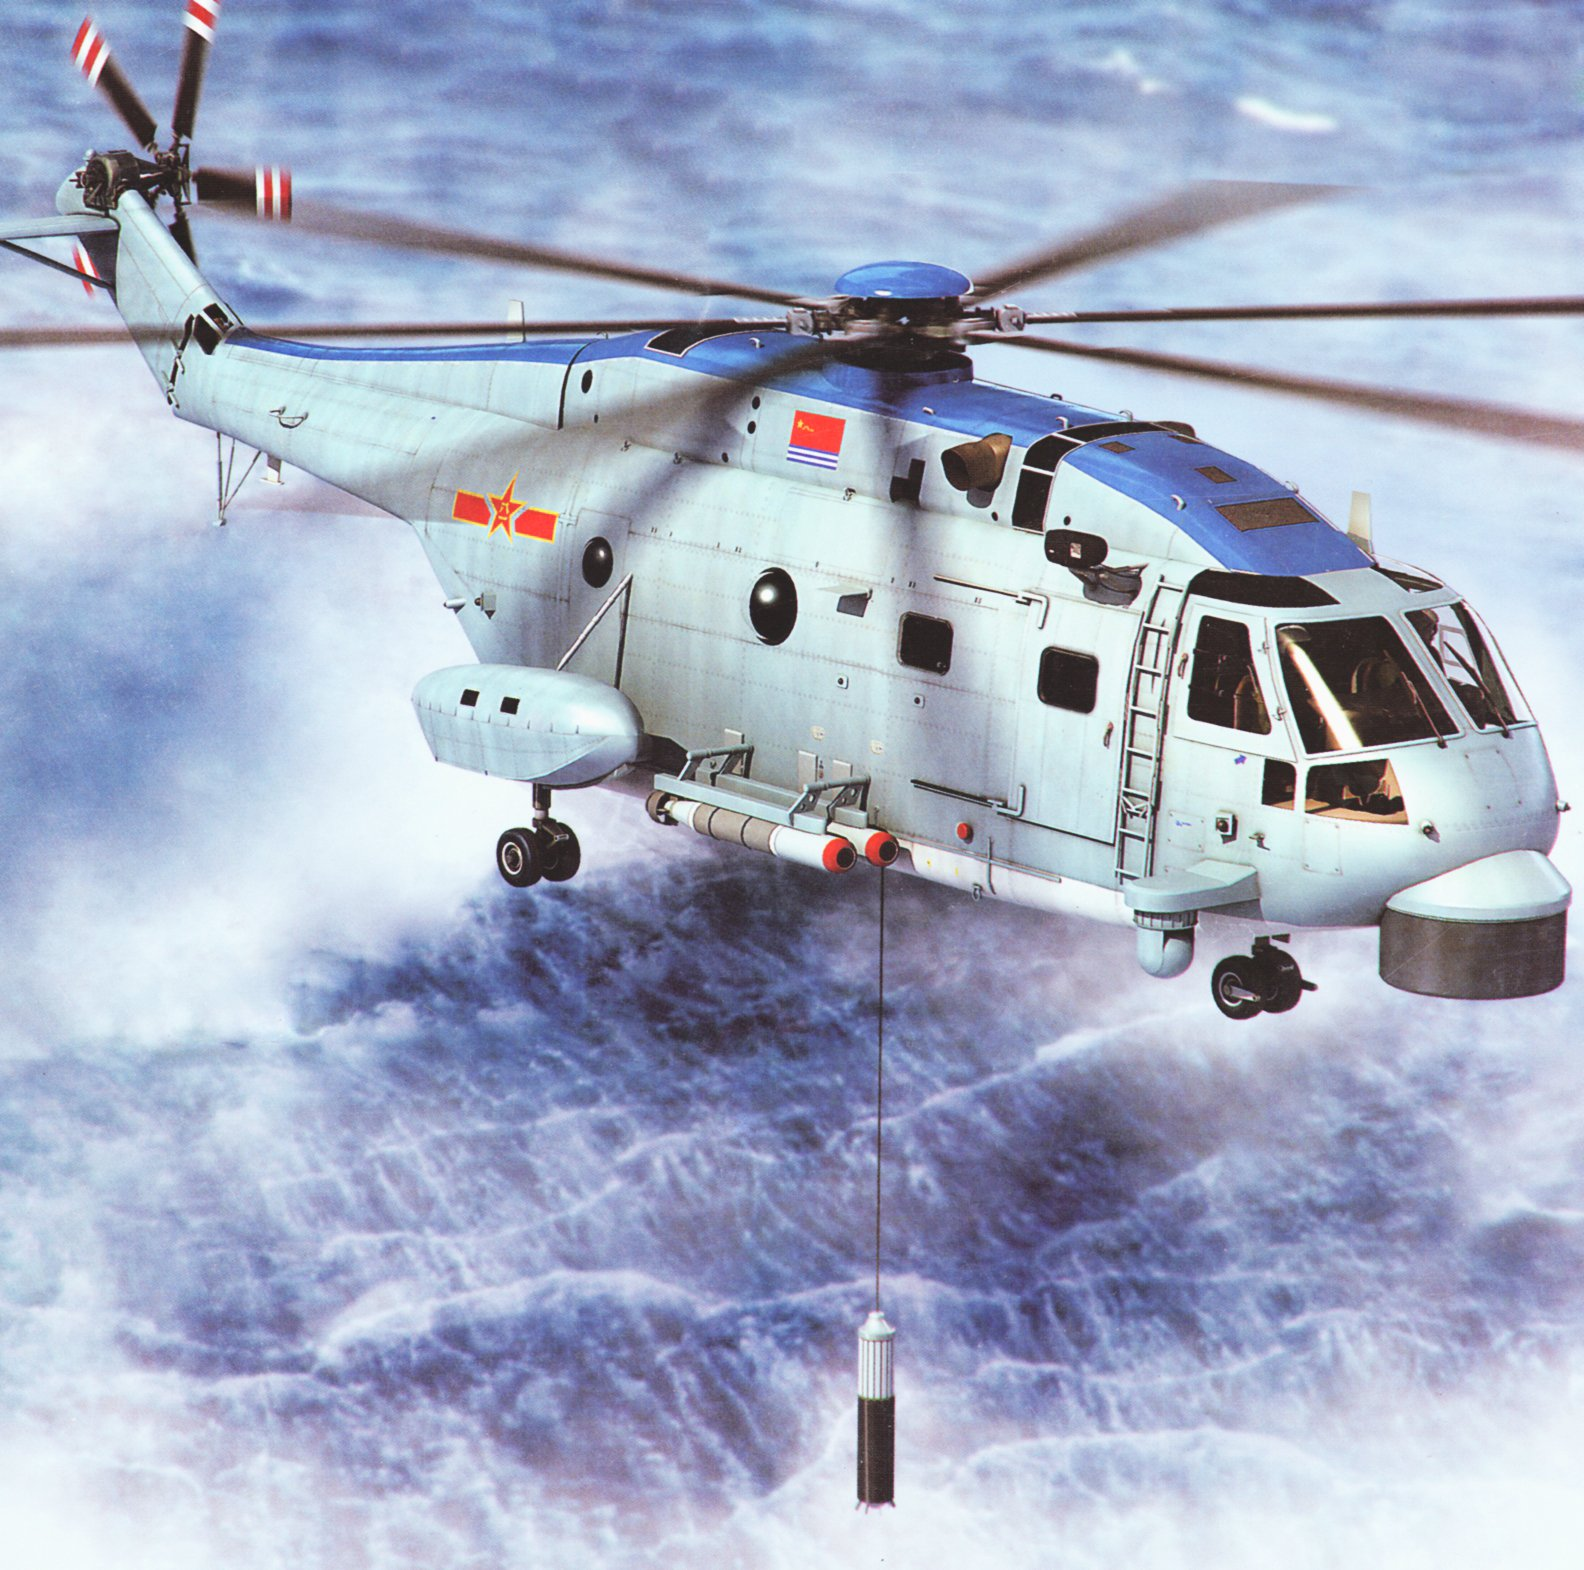 PLAN Chinese Z-18F Anti-Submarine Helicopter